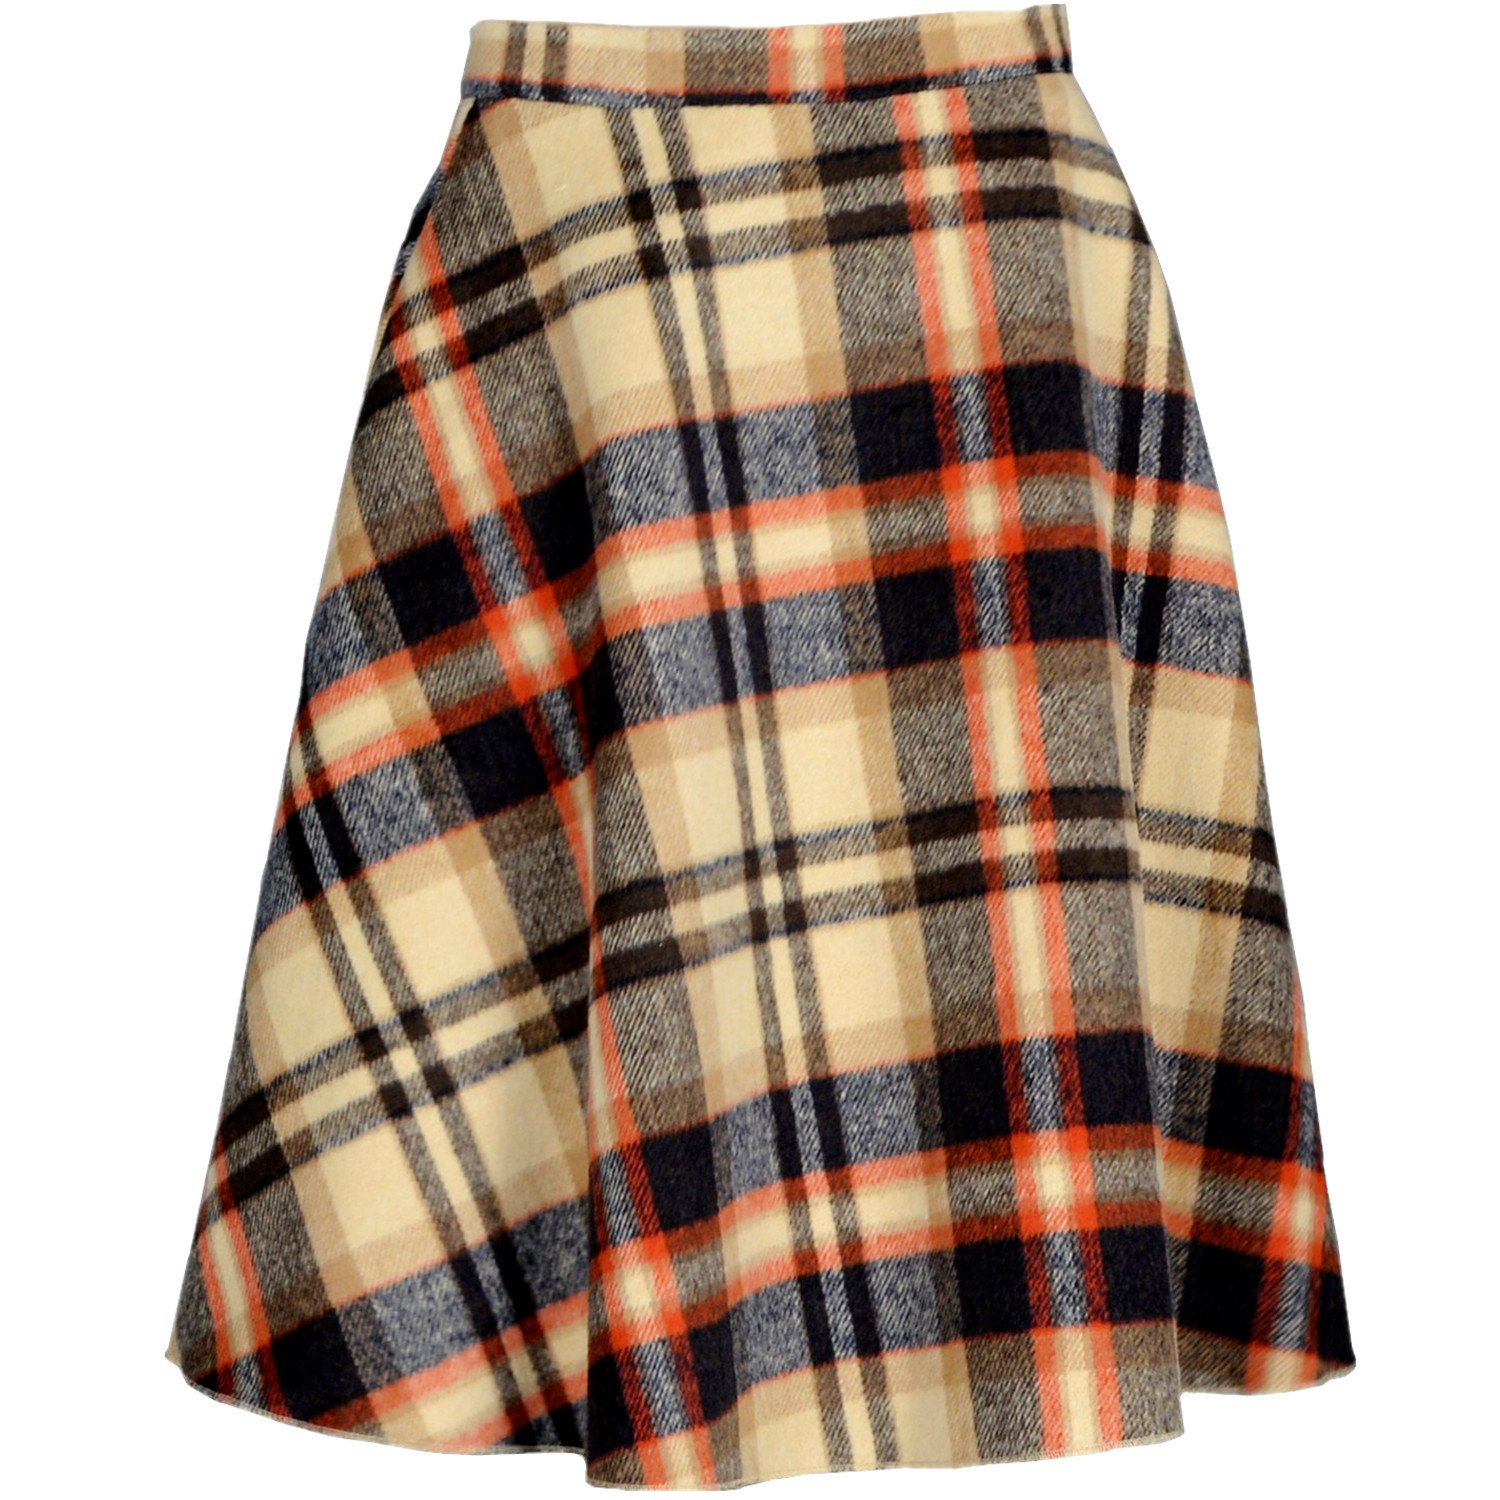 Retro Skirts: Vintage, Pencil, Circle, & Plus Sizes YSJ Womens Wool Midi Skirt A-Line Pleated Vintage Plaid Winter Swing Skirts  AT vintagedancer.com